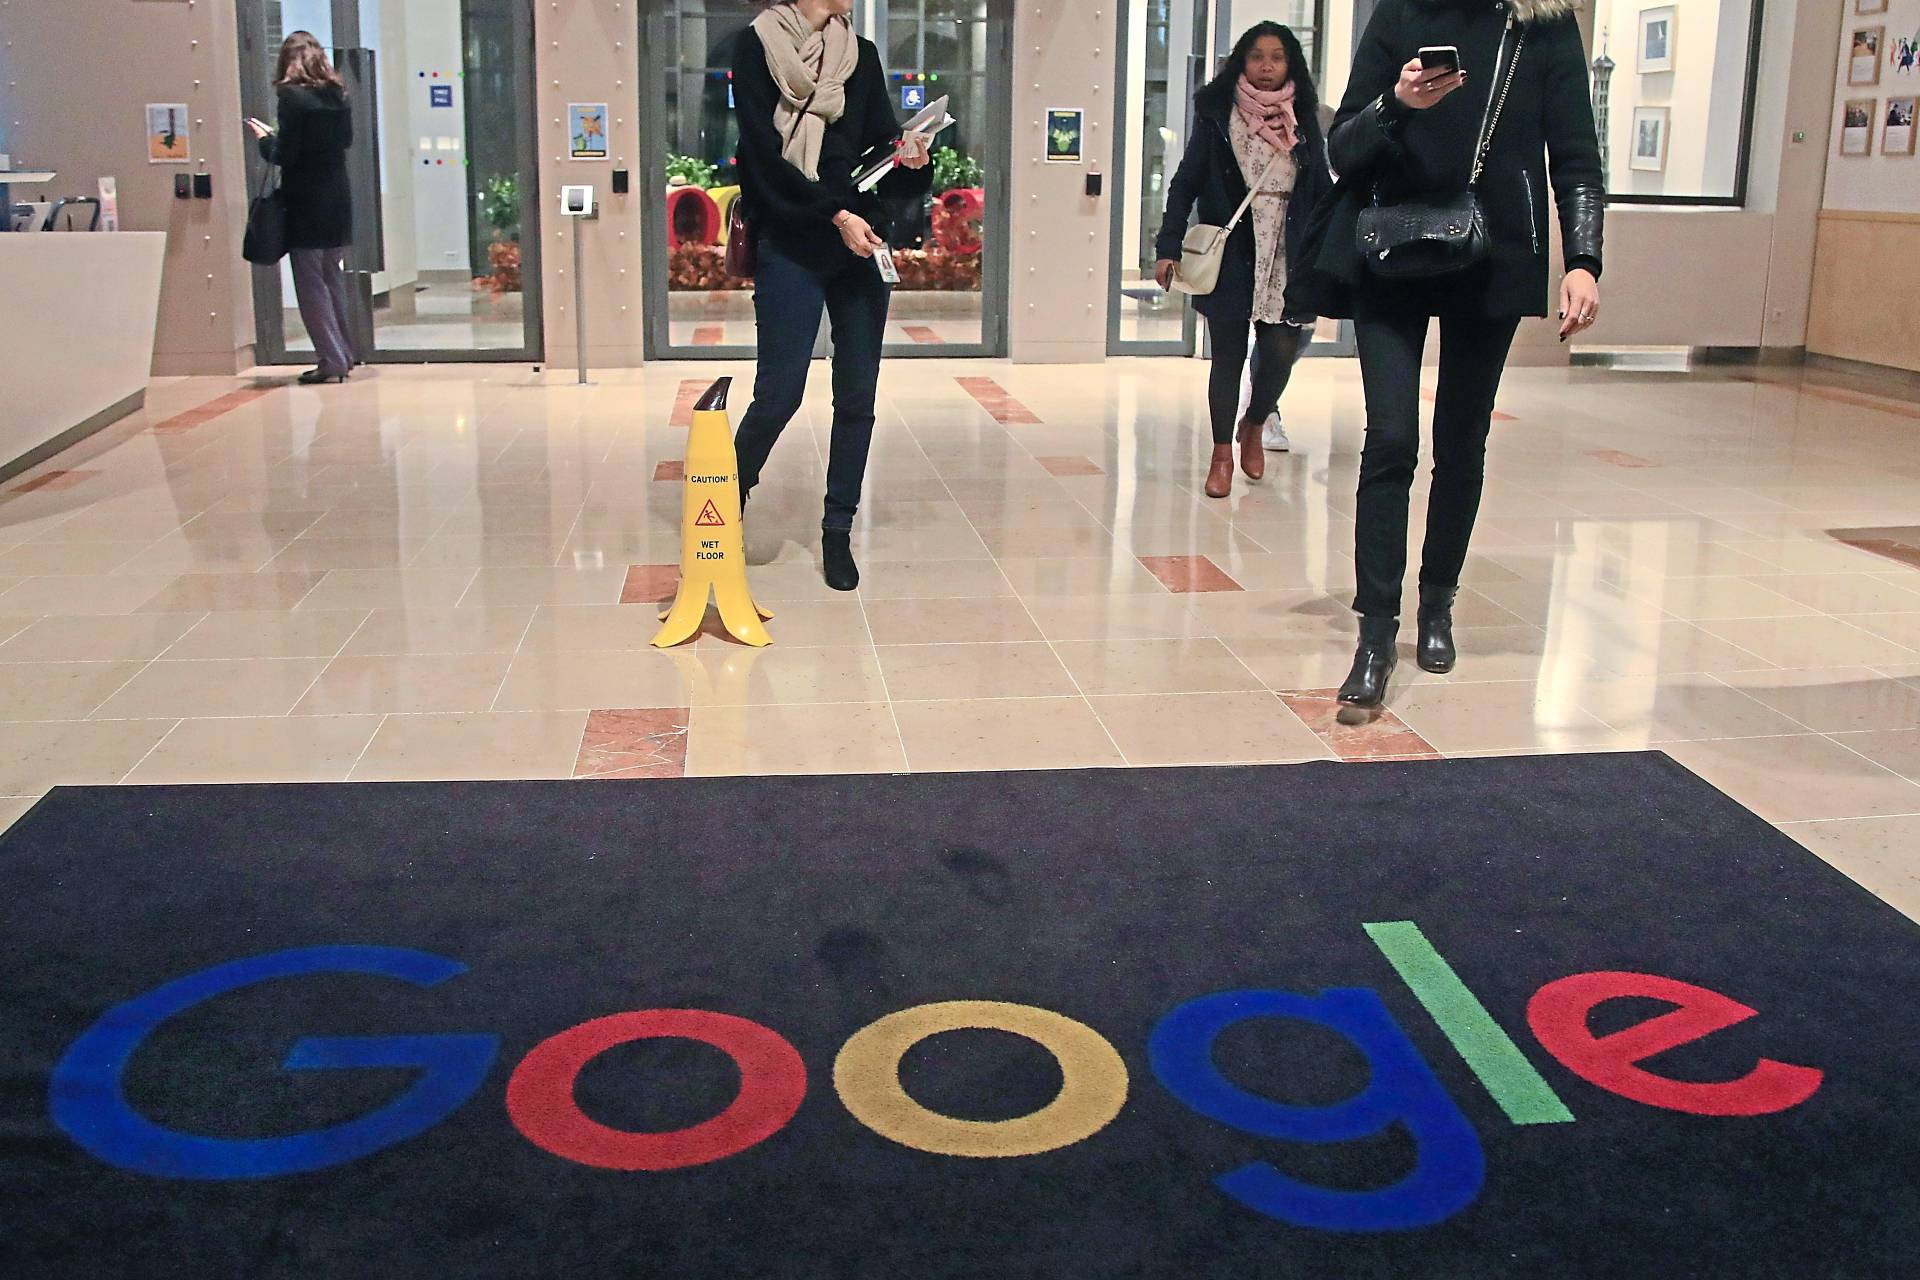 A file photo of Google employees walking out of the entrance hall of Google France in Paris, where the government is moving to tax digital services. In Malaysia, Google is preparing to deal with digital taxes too. — AP